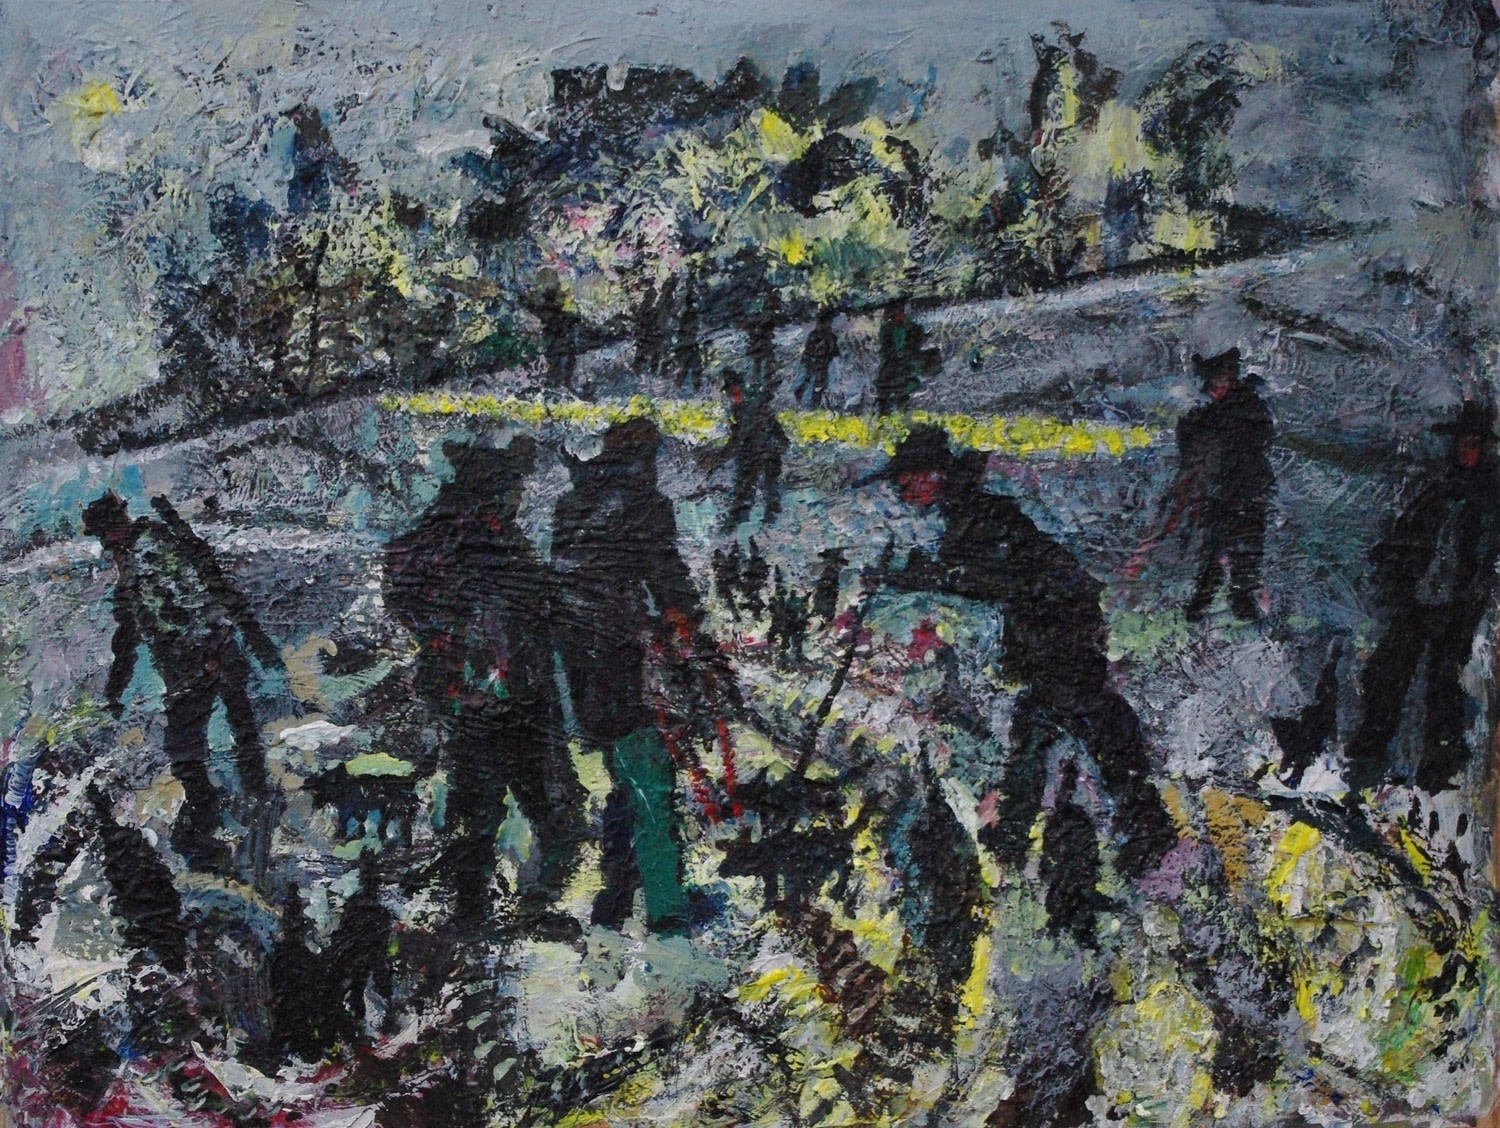 """<span class=""""link fancybox-details-link""""><a href=""""/exhibitions/36/works/image_standalone4820/"""">View Detail Page</a></span><p>John R Bradley</p><p><em>Winter Meet</em></p><p>acrylic</p><p>£1000</p><p></p><p>Judge's Choice</p><p>Selected by Kristian Day</p><p>Independent Gallerist & Curator</p>"""